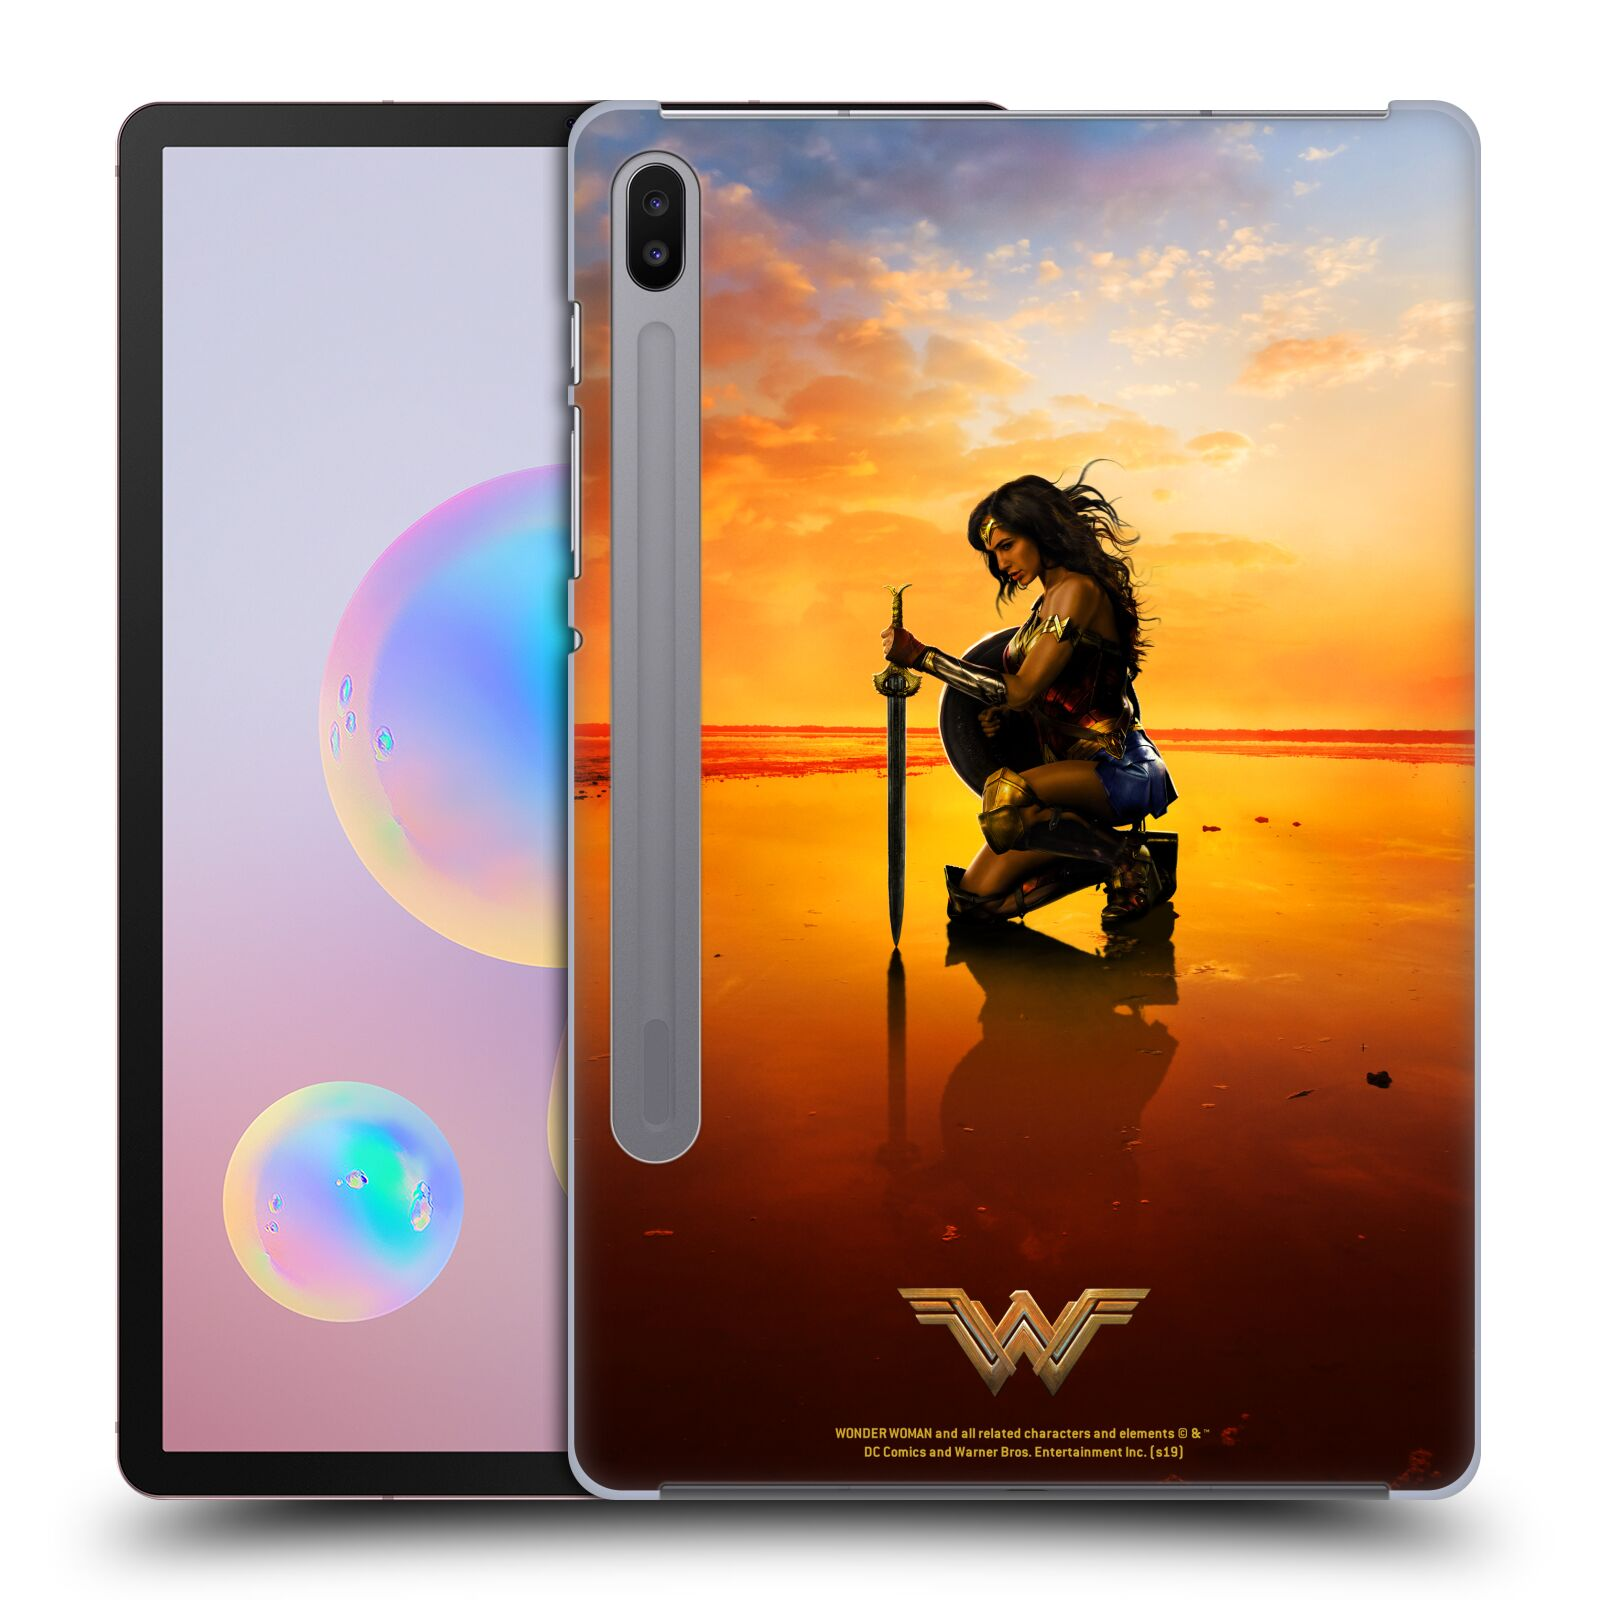 Official Wonder Woman Movie Posters Sword And Shield Case for Samsung Galaxy Tab S6 (2019)